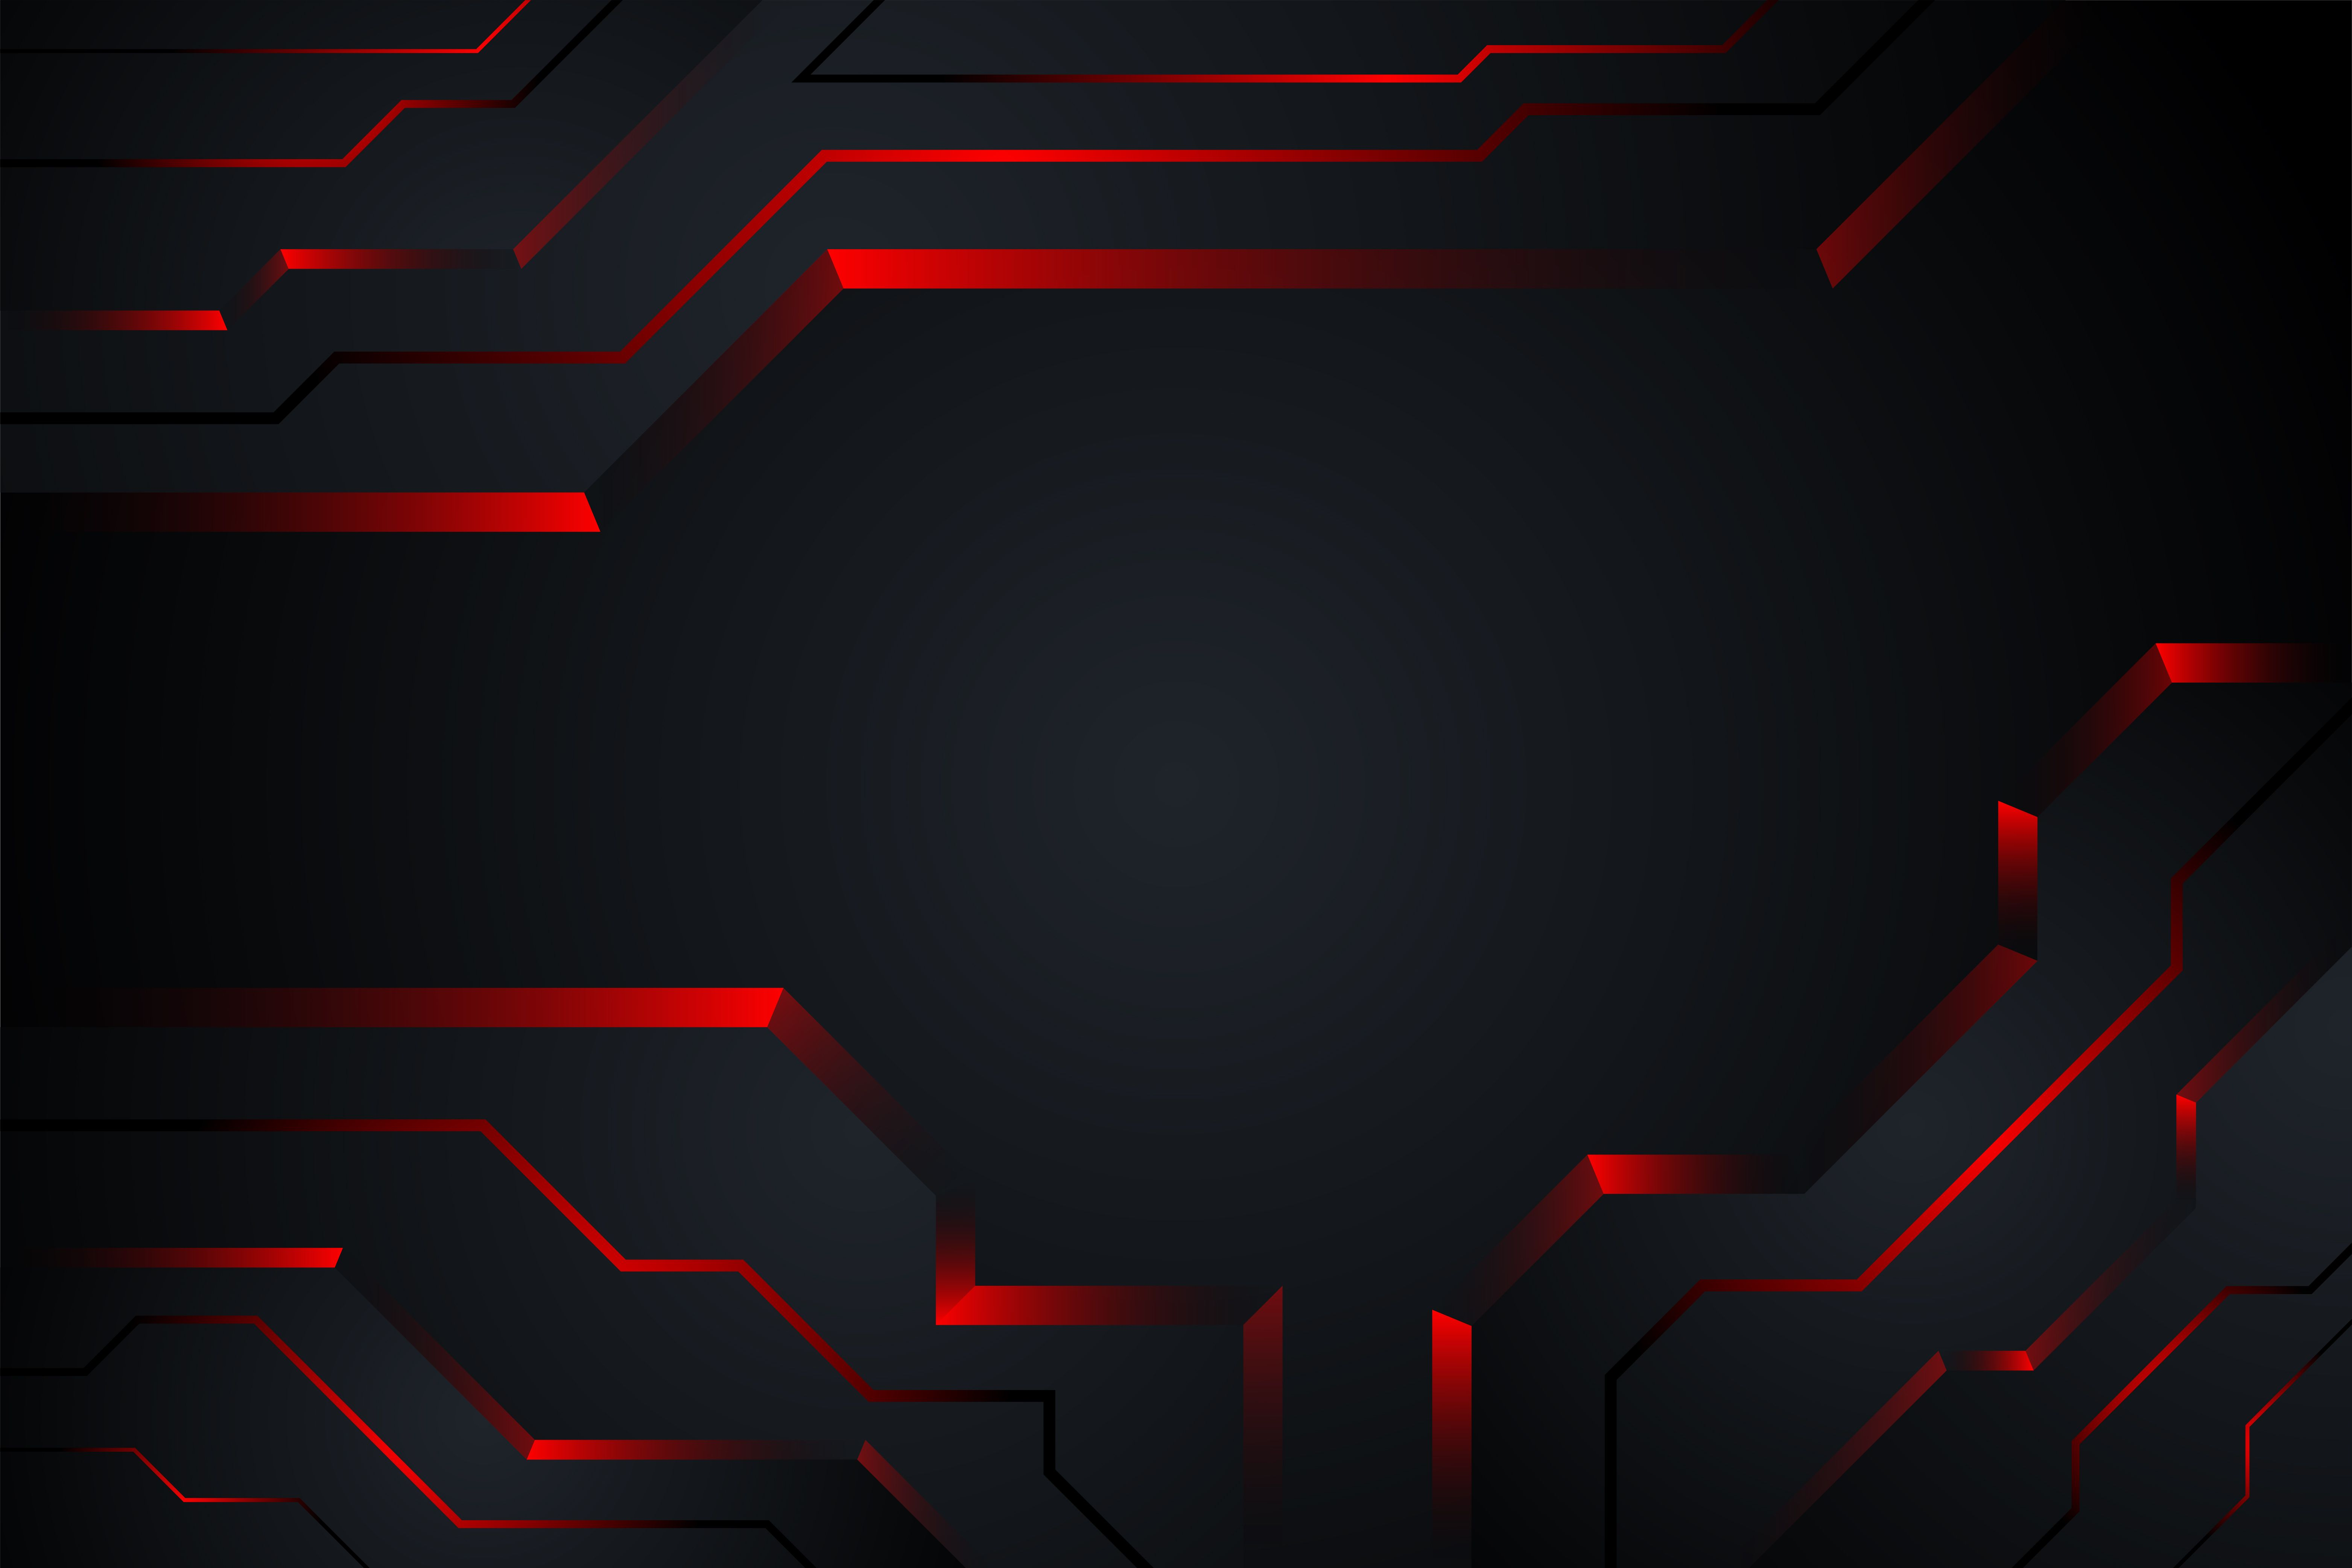 Red Black Background Game Graphic By Noory Shopper Creative Fabrica Red And Black Background Youtube Banner Backgrounds Black And Red